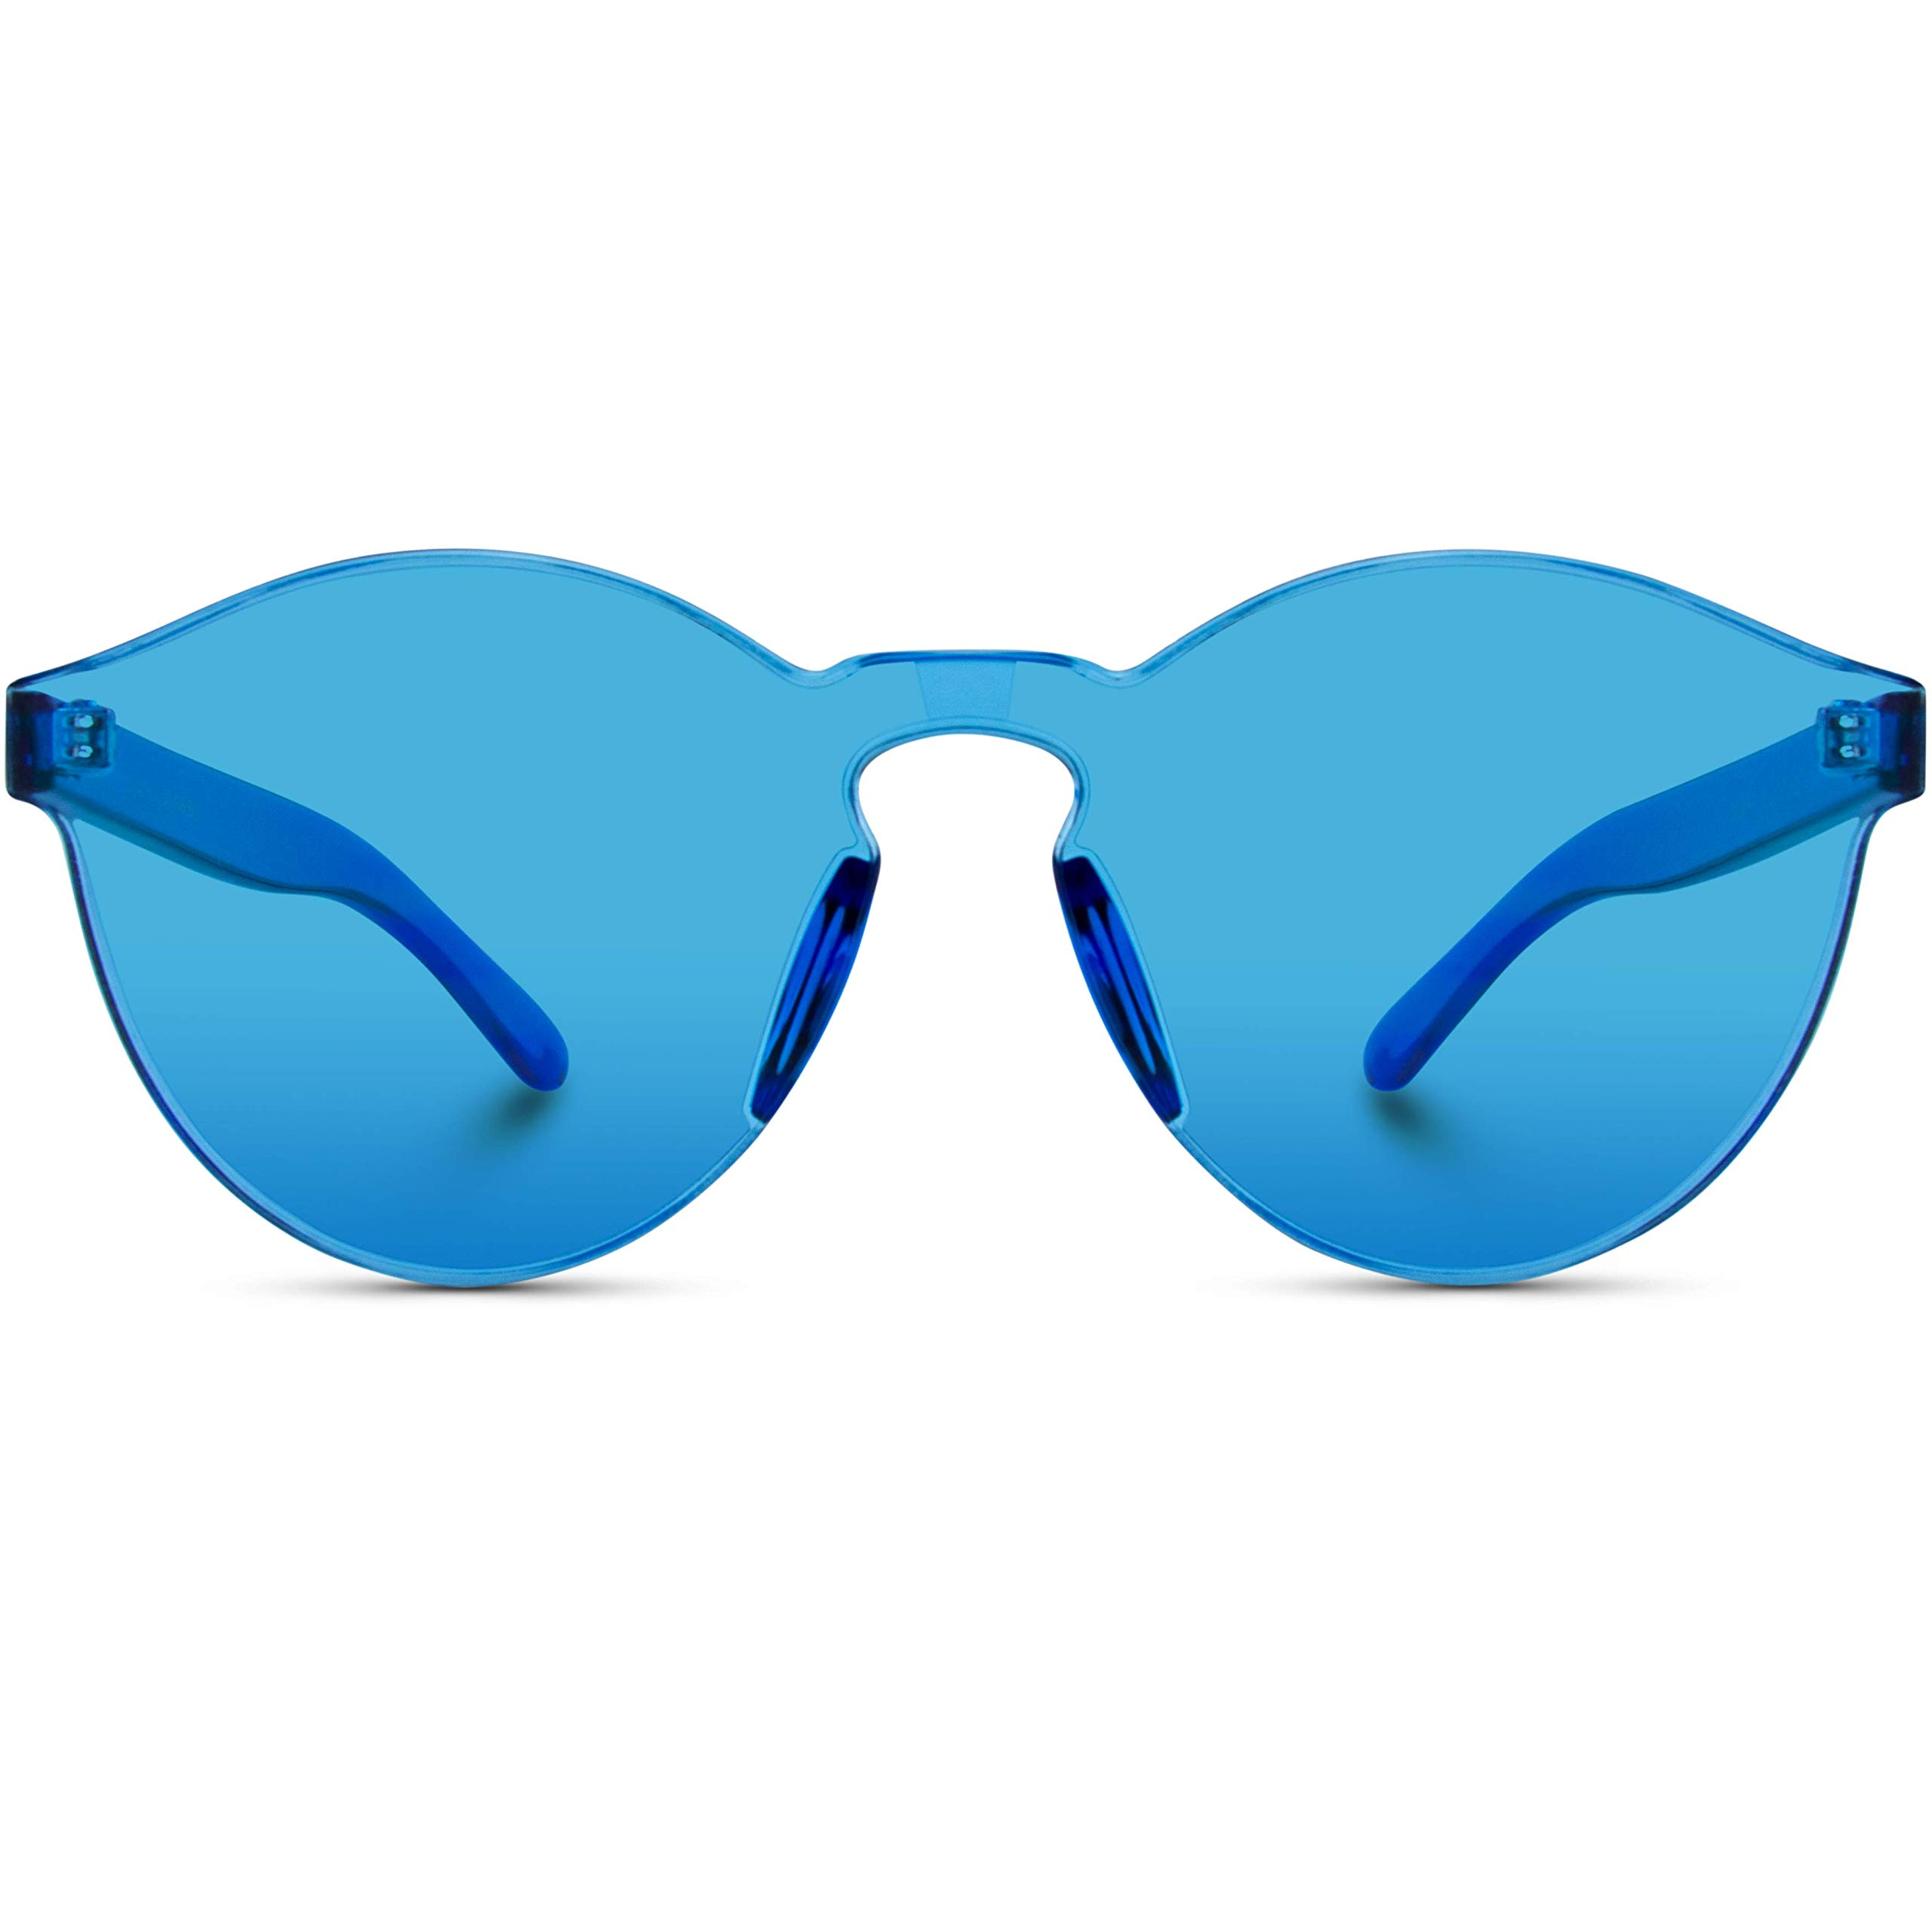 feab3fbefbb6 WearMe Pro - Colorful One Piece Transparent Round Super Retro Sunglasses  product image